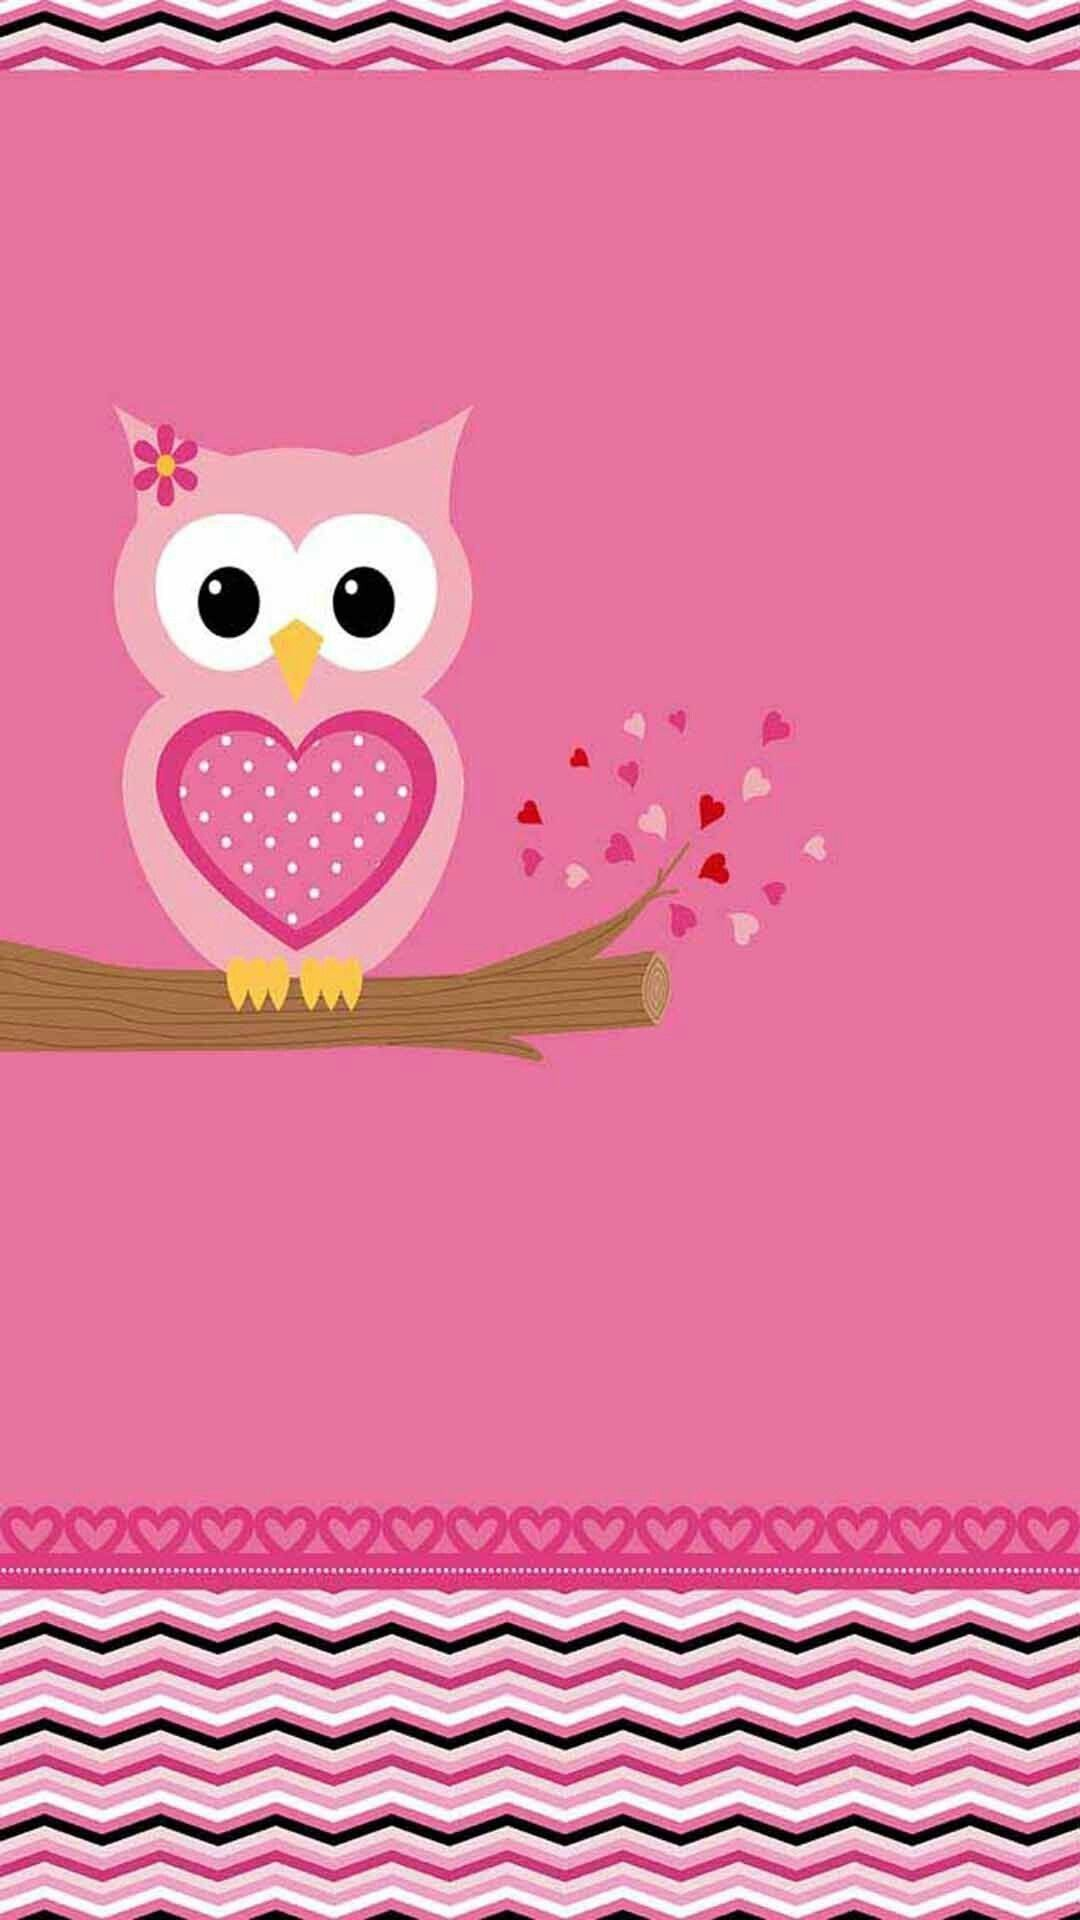 Cute Owl Wallpaper Home Screen Animals Wallpapers Ideas In 2020